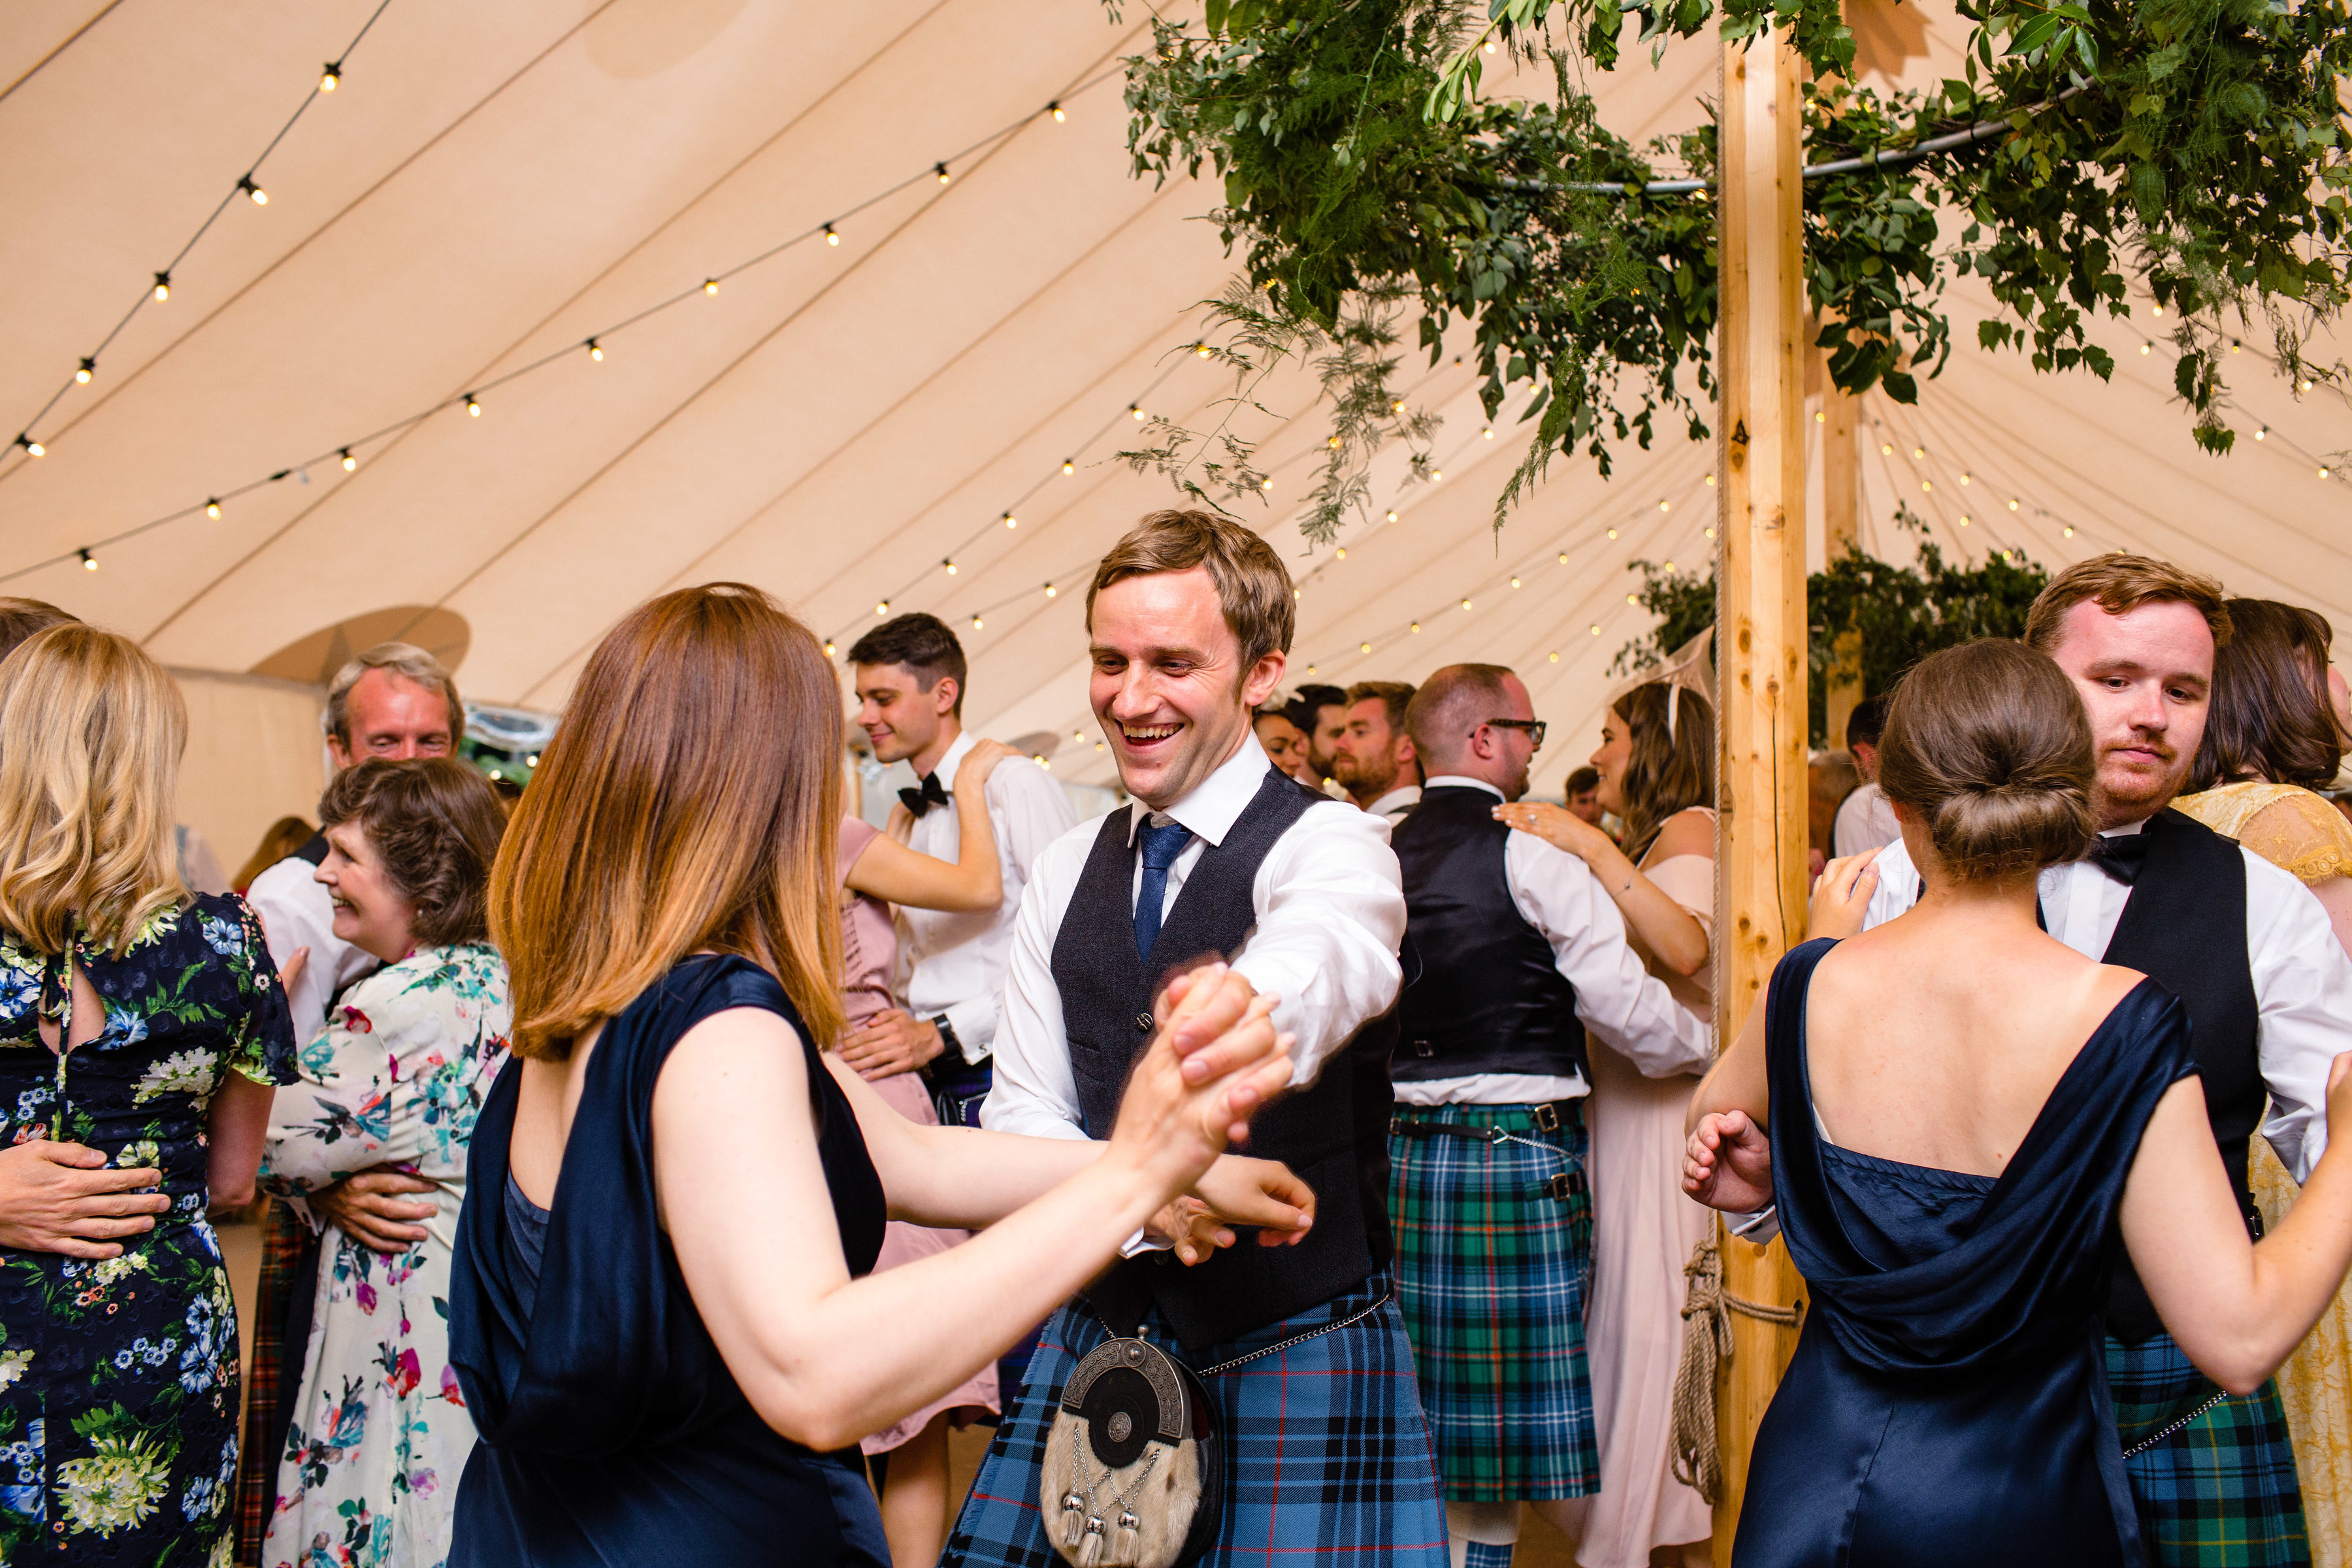 PapaKåta couple Lucy & Tom's Sperry Wedding at Gordon Castle Scotland captured by Helen Abraham Photography- Ceilidh dance